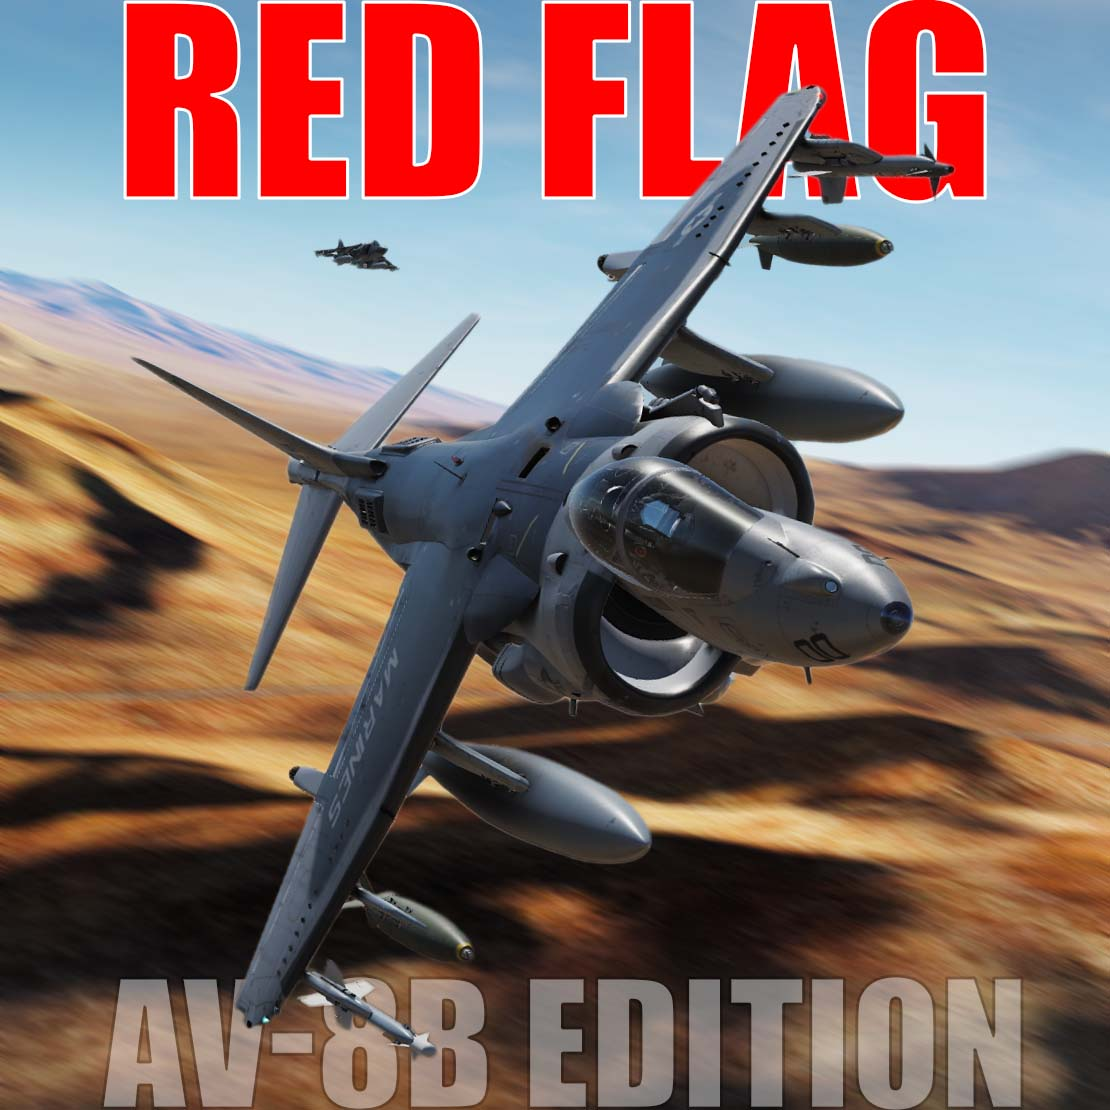 RED FLAG - Harrier Mission 1 (ver 1.9 updated February 22, 2020)